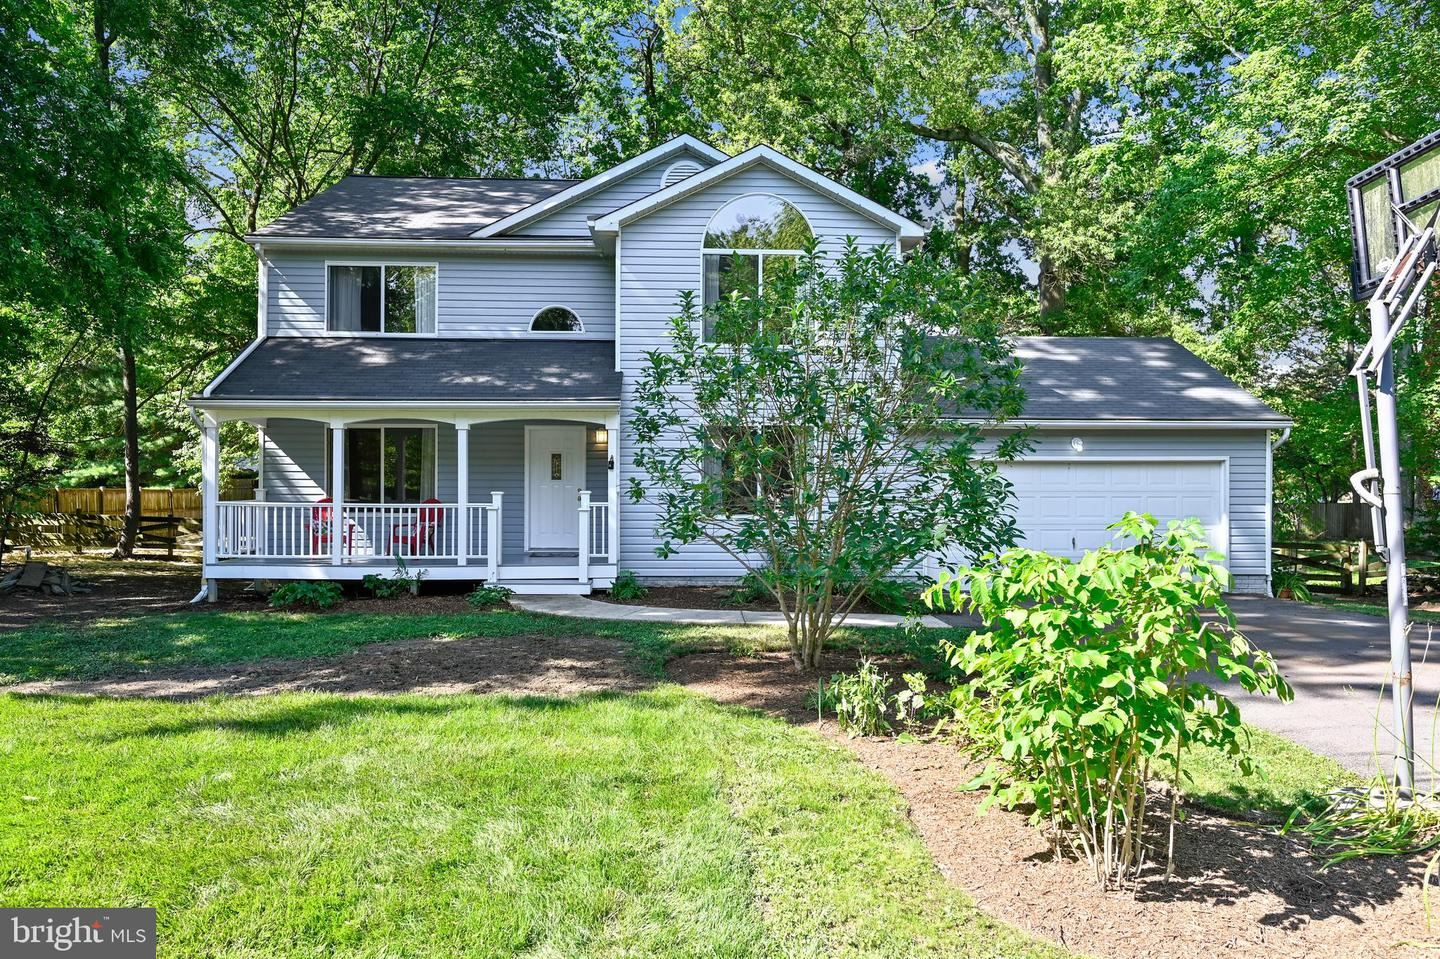 Photo for 113 GARDNER DR, ANNAPOLIS, MD 21403 (MLS # MDAA436710)